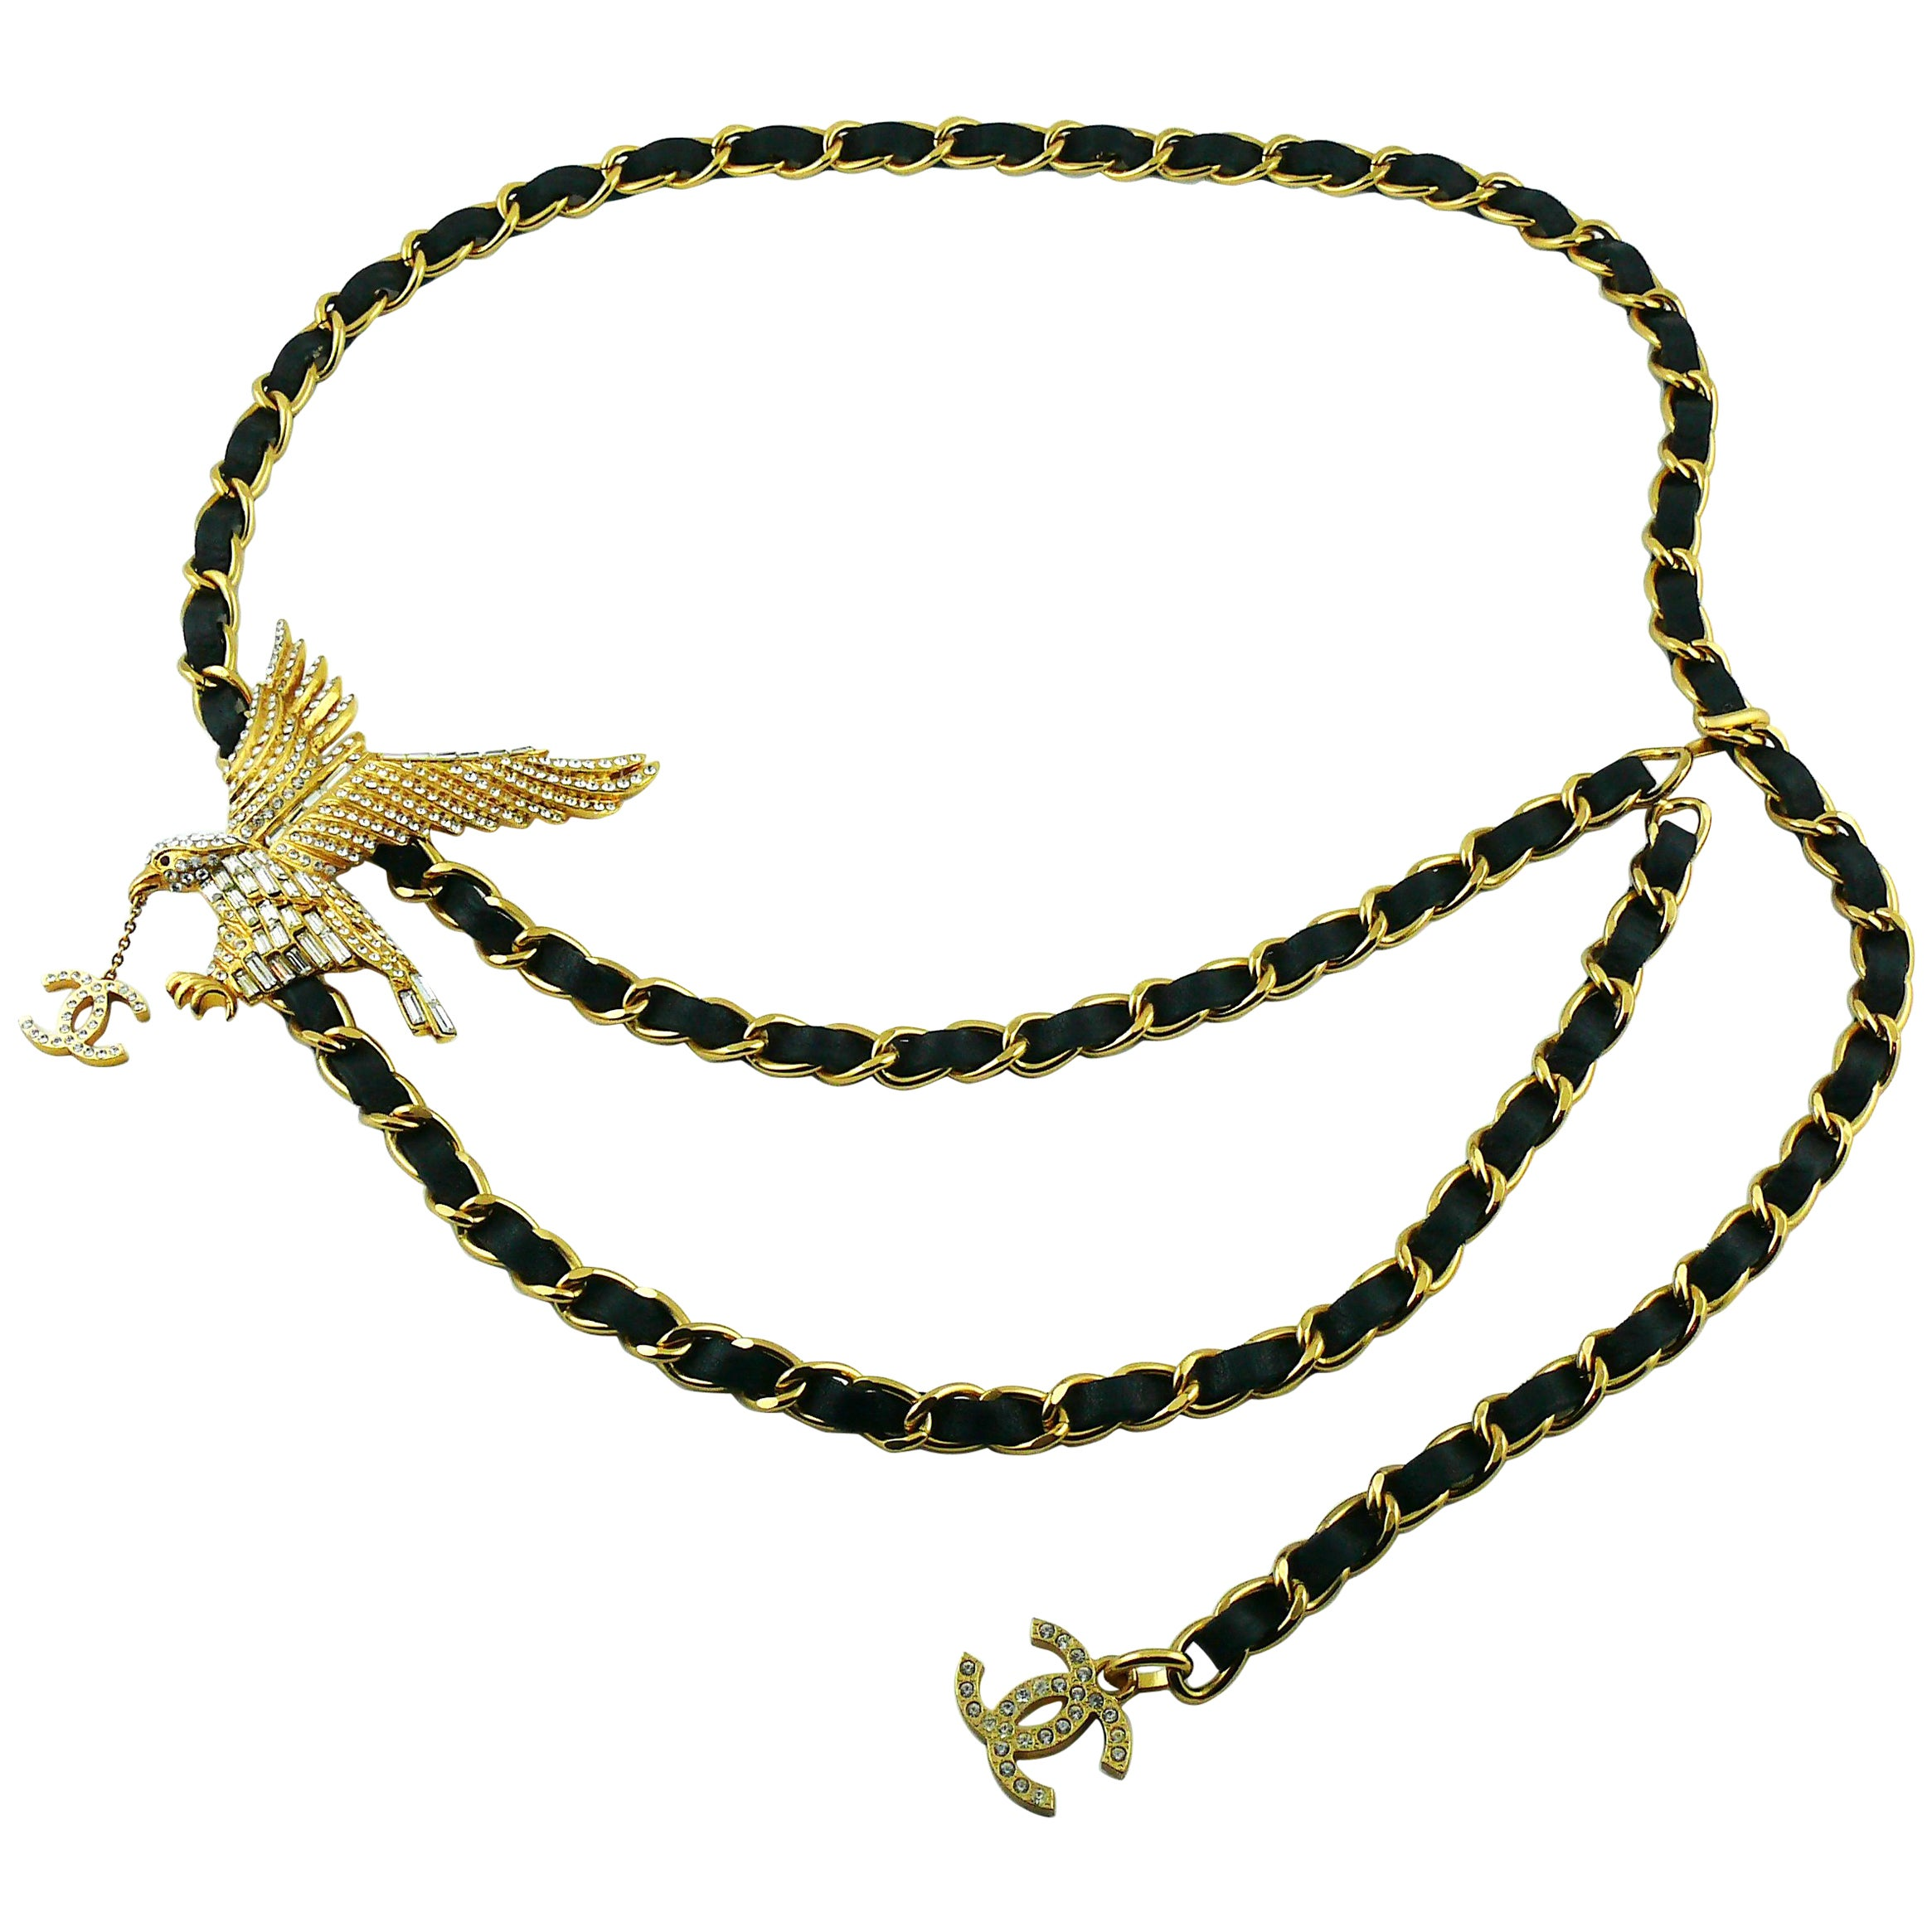 Chanel Rare Jewelled Eagle Black and Gold Runway Belt or Necklace